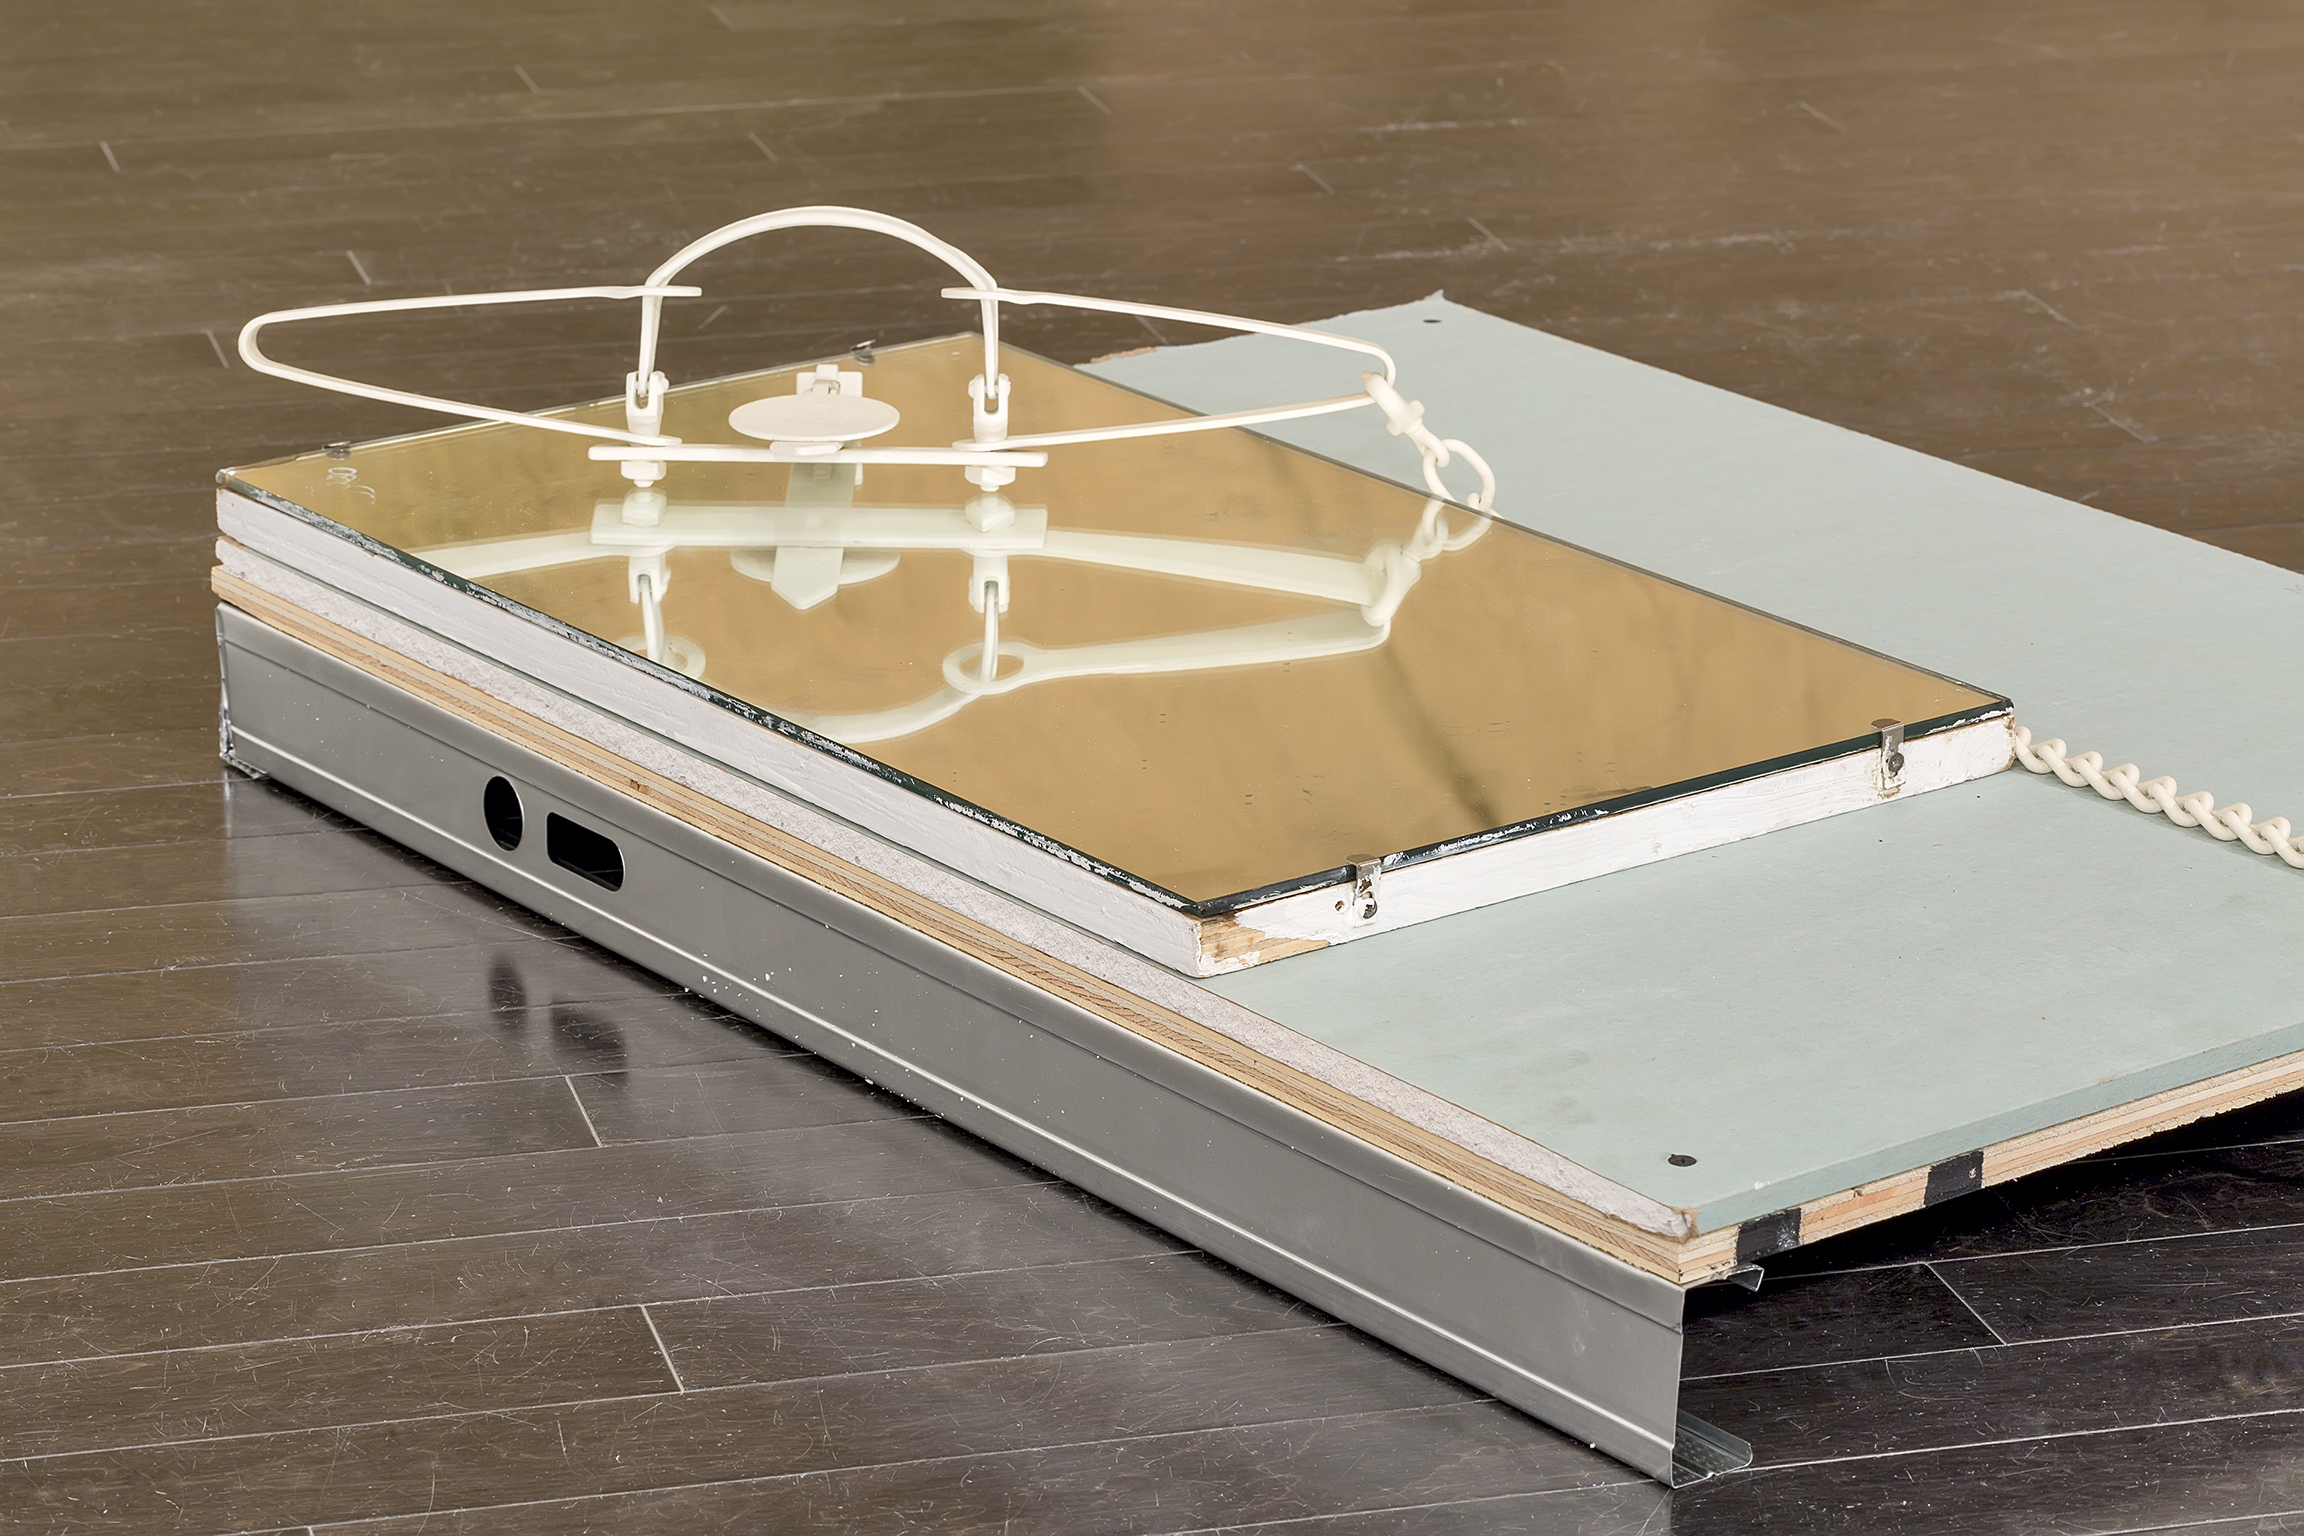 Duane Linklater, Trap (detail), 2016, powder-coated trap, mirror, gypsum, wood, dimensions variable by